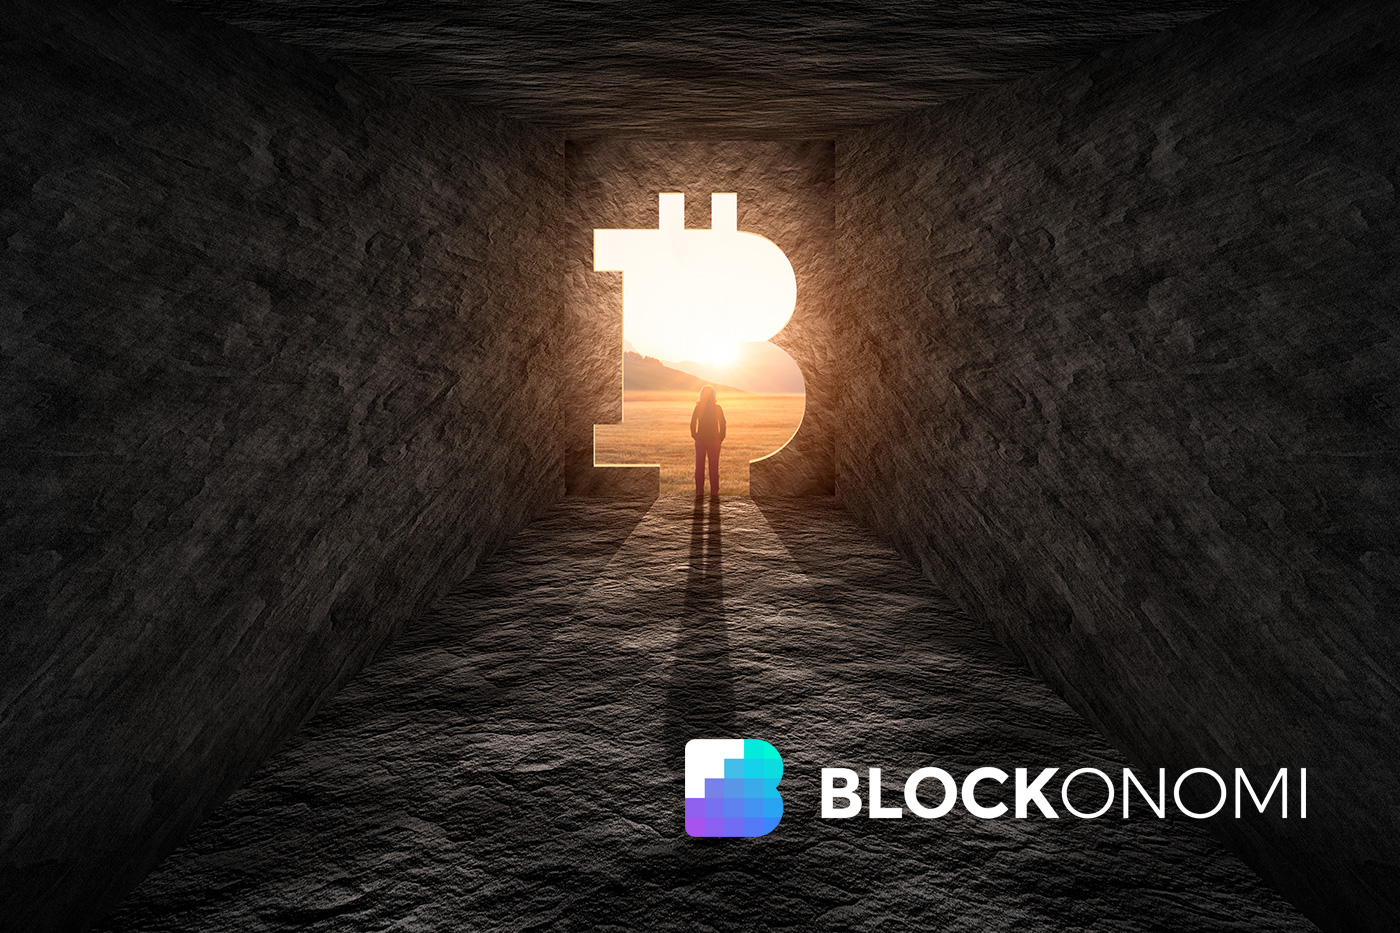 Bitcoin Light at the End of the Tunnel